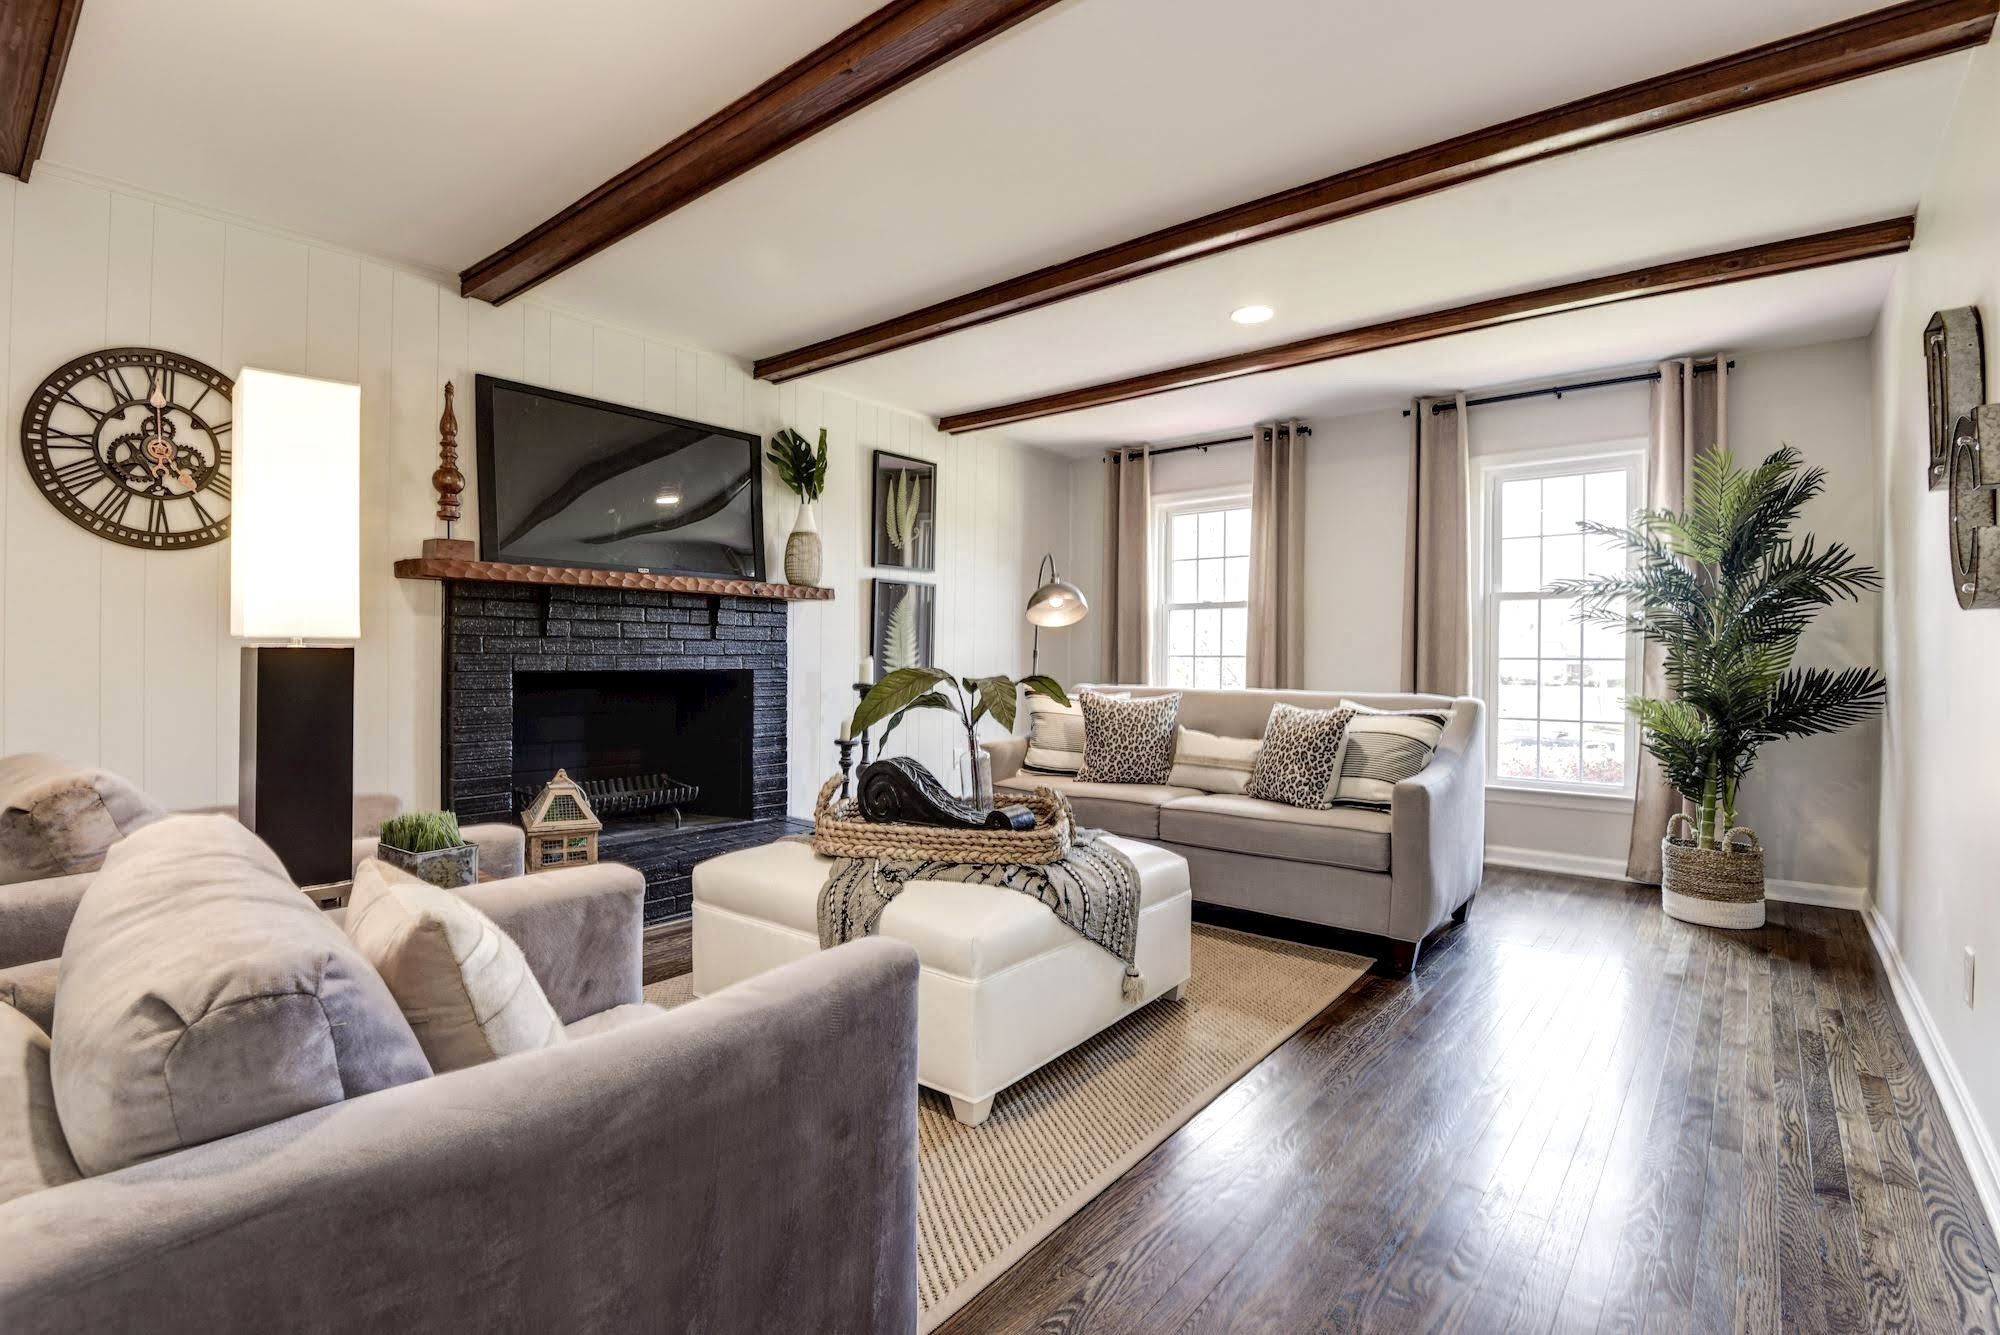 Staging Your Home for Resale